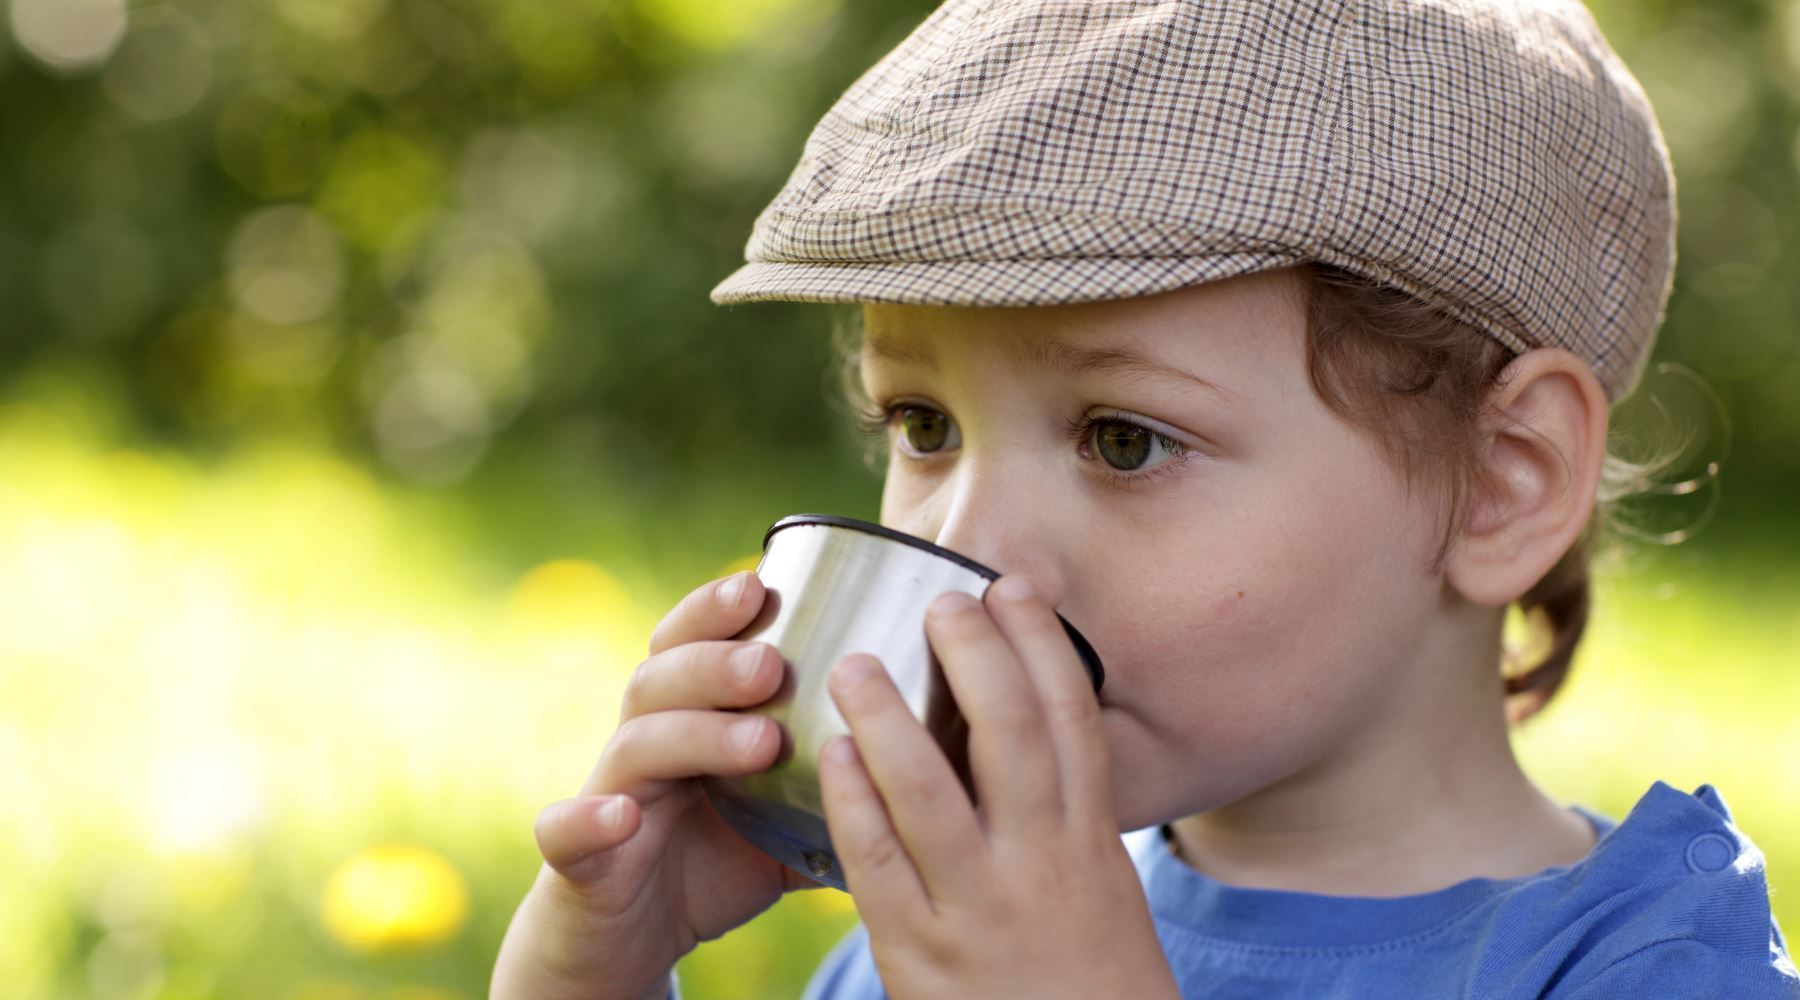 Is Green Tea Good For Kids?